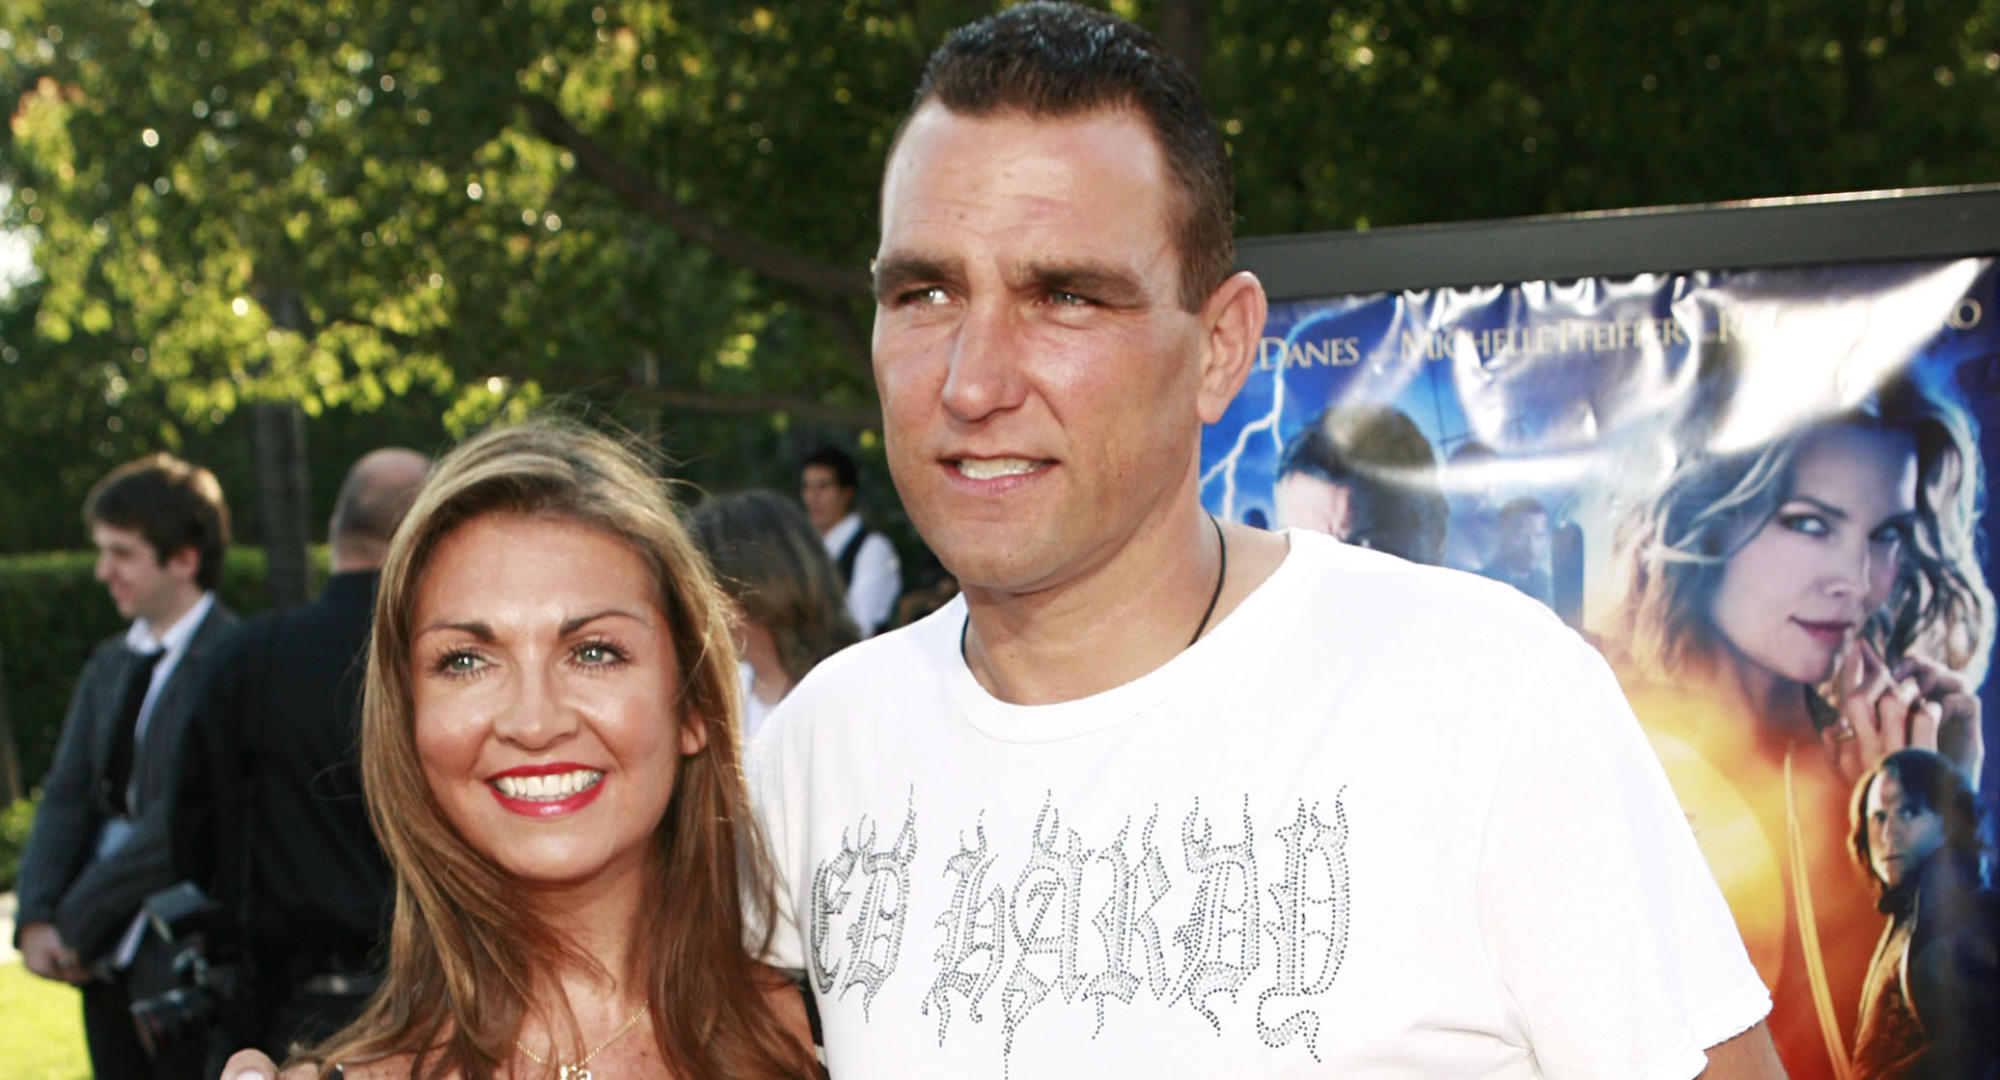 Vinnie Jones marks late wife Tanya's birthday with touching tribute